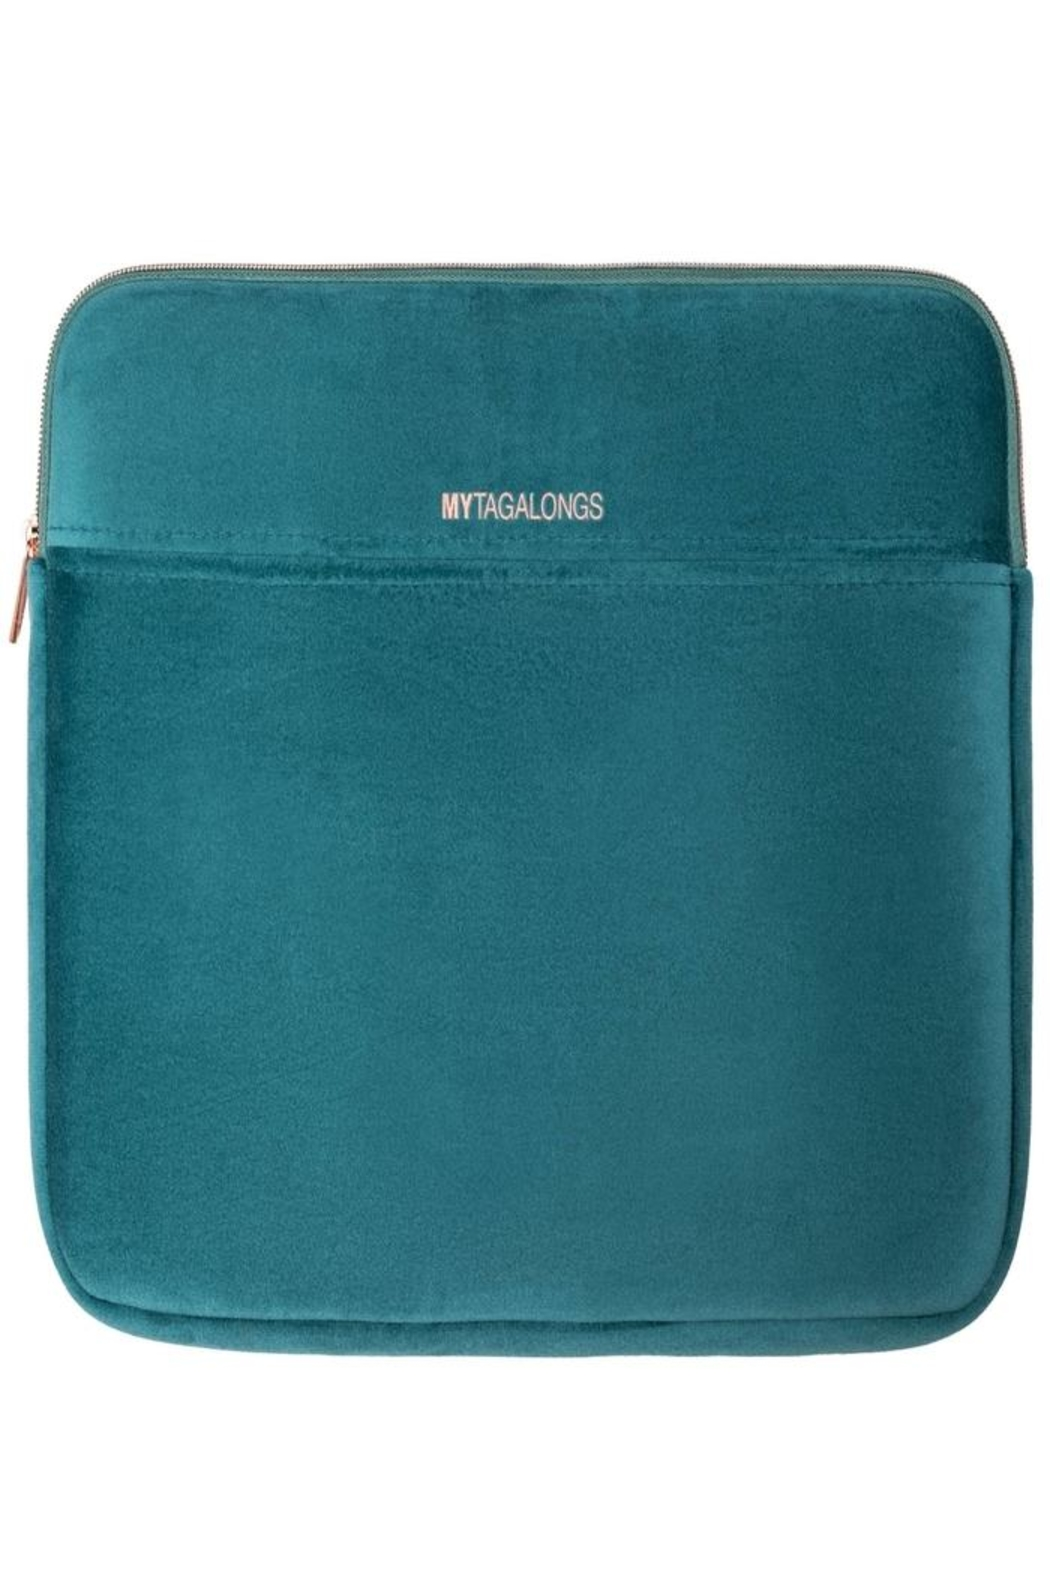 Fason De Viv Laptop Sleeve - Vixen Teal (Velour Finish) - Main Image